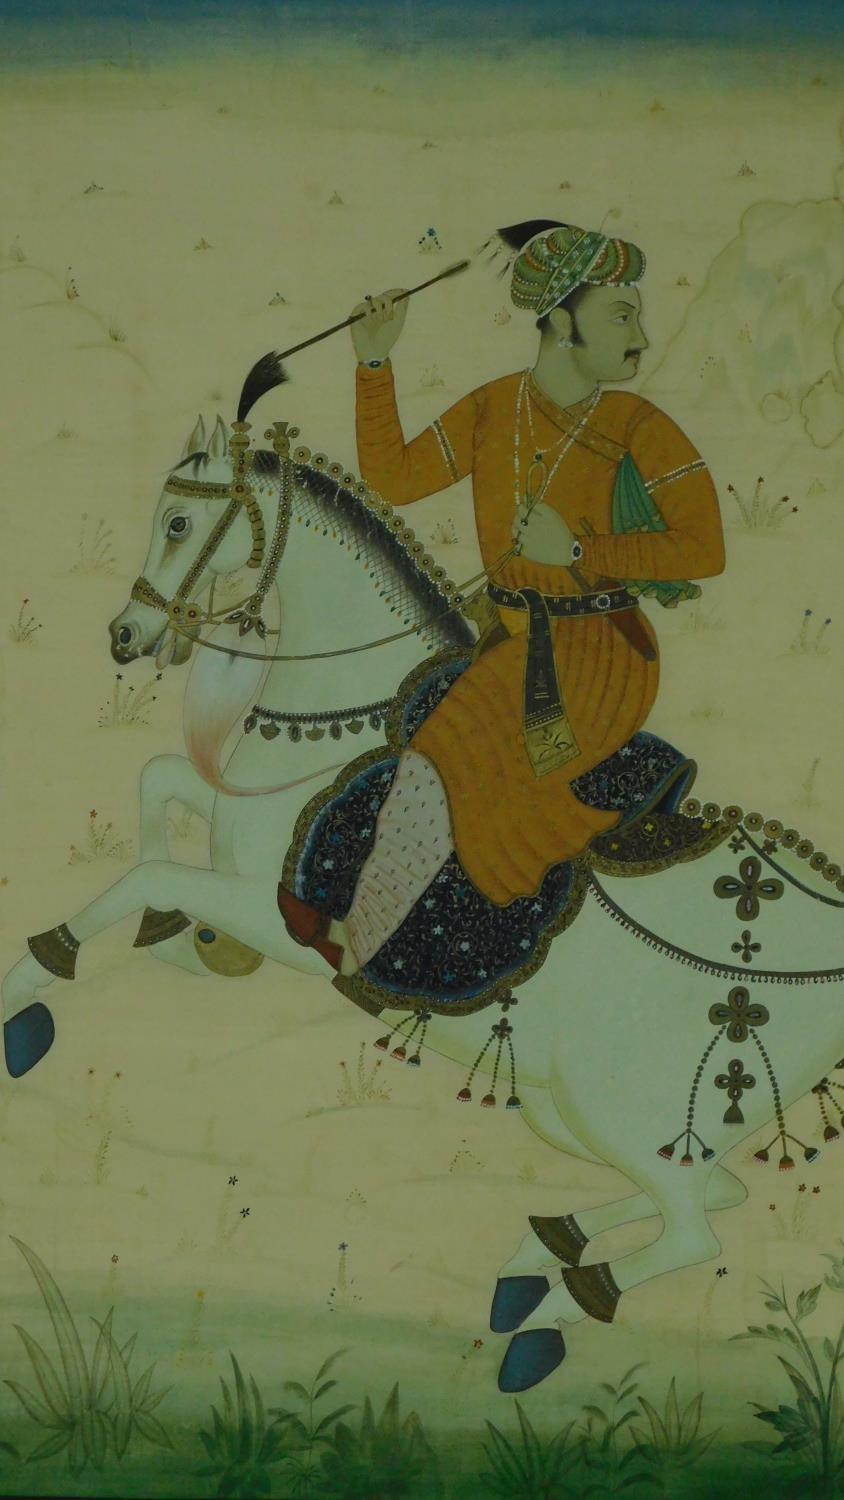 A framed Indian equestrian painting on silk, horseman on Rajasthan Marwari. h118x96cm - Image 2 of 8